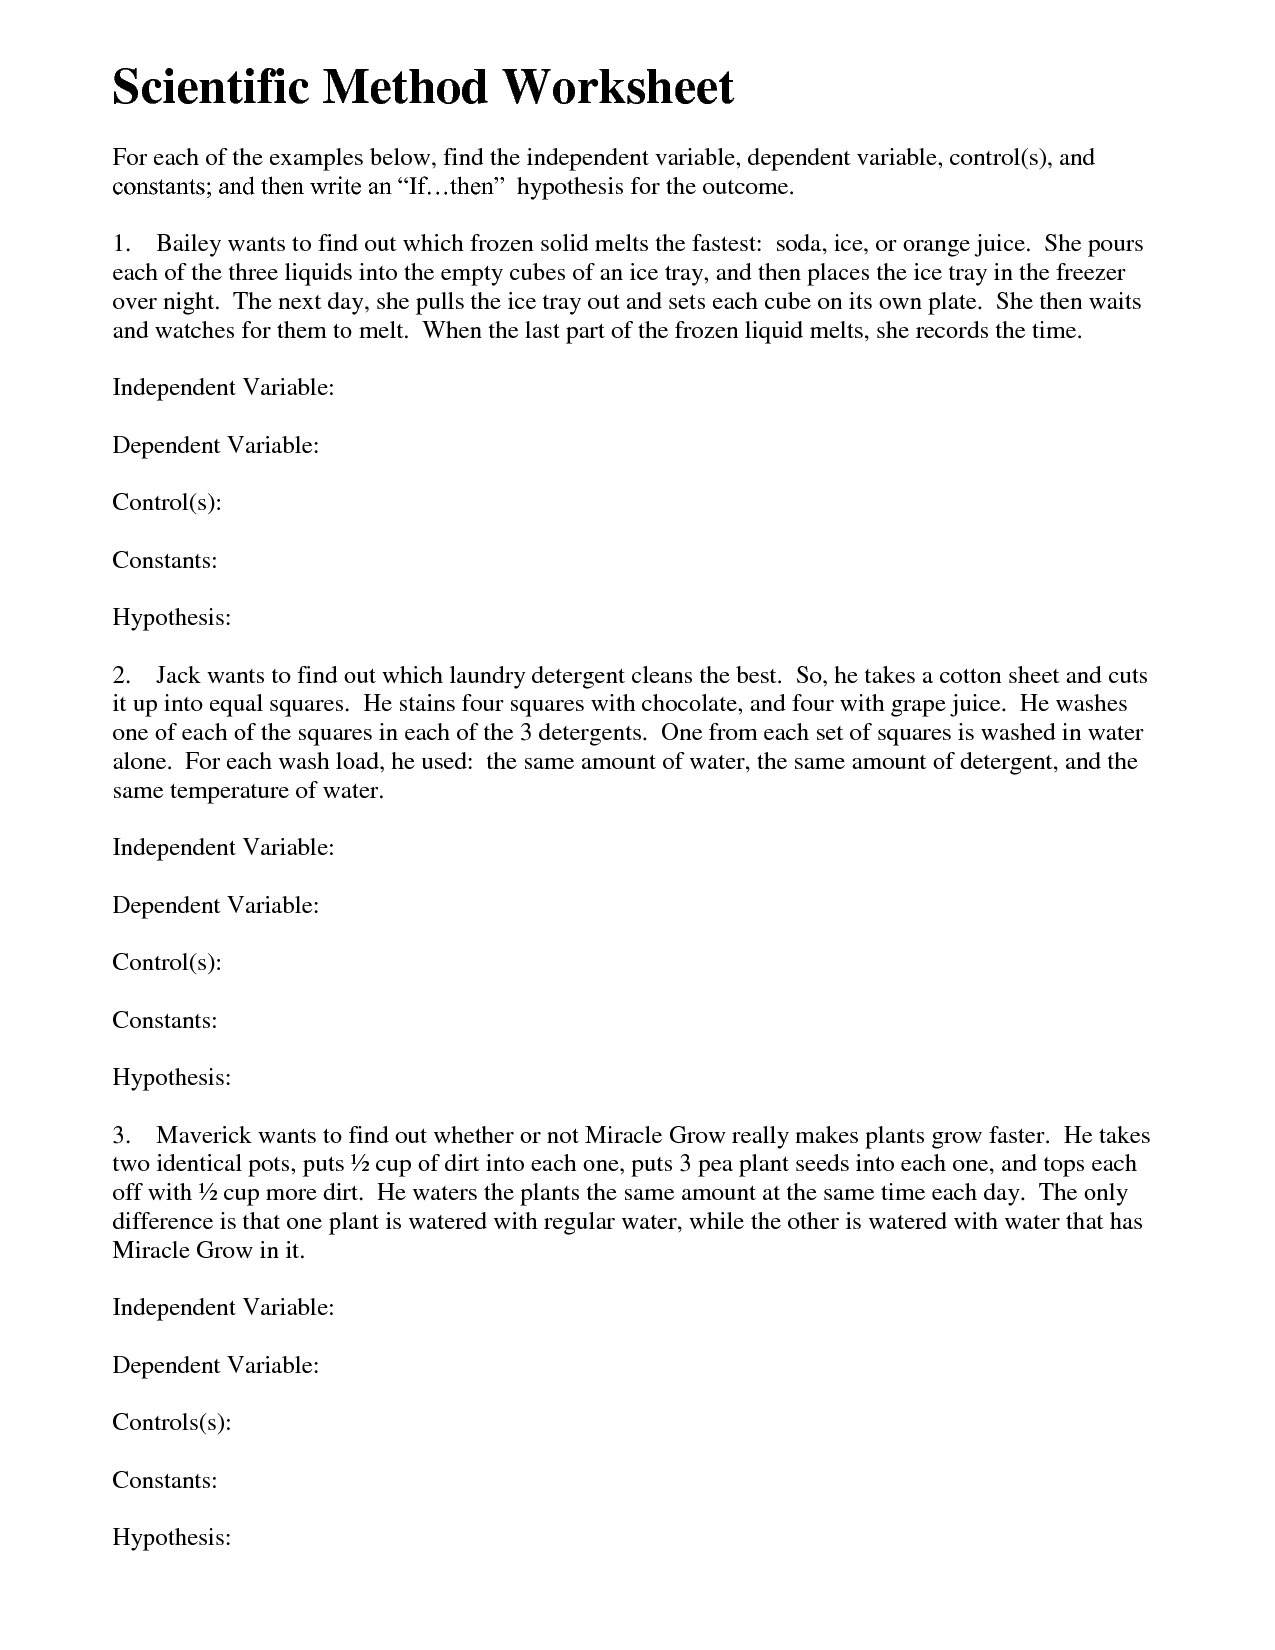 Worksheets Independent And Dependent Variables Worksheet Science collection of independent and dependent variables worksheet download them try to solve